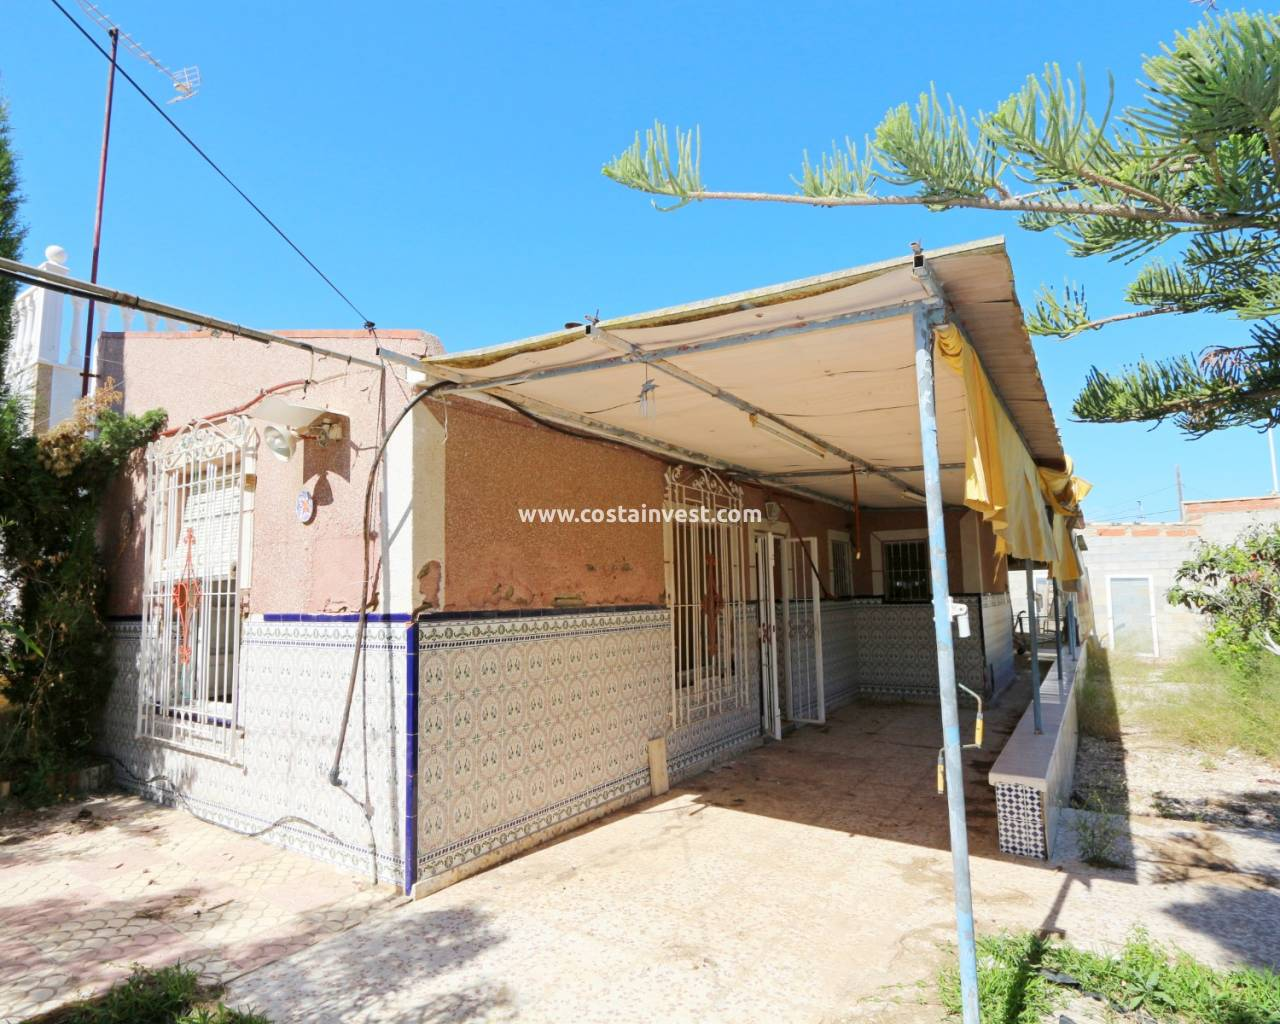 Resale - Land - Orihuela Costa - La Zenia